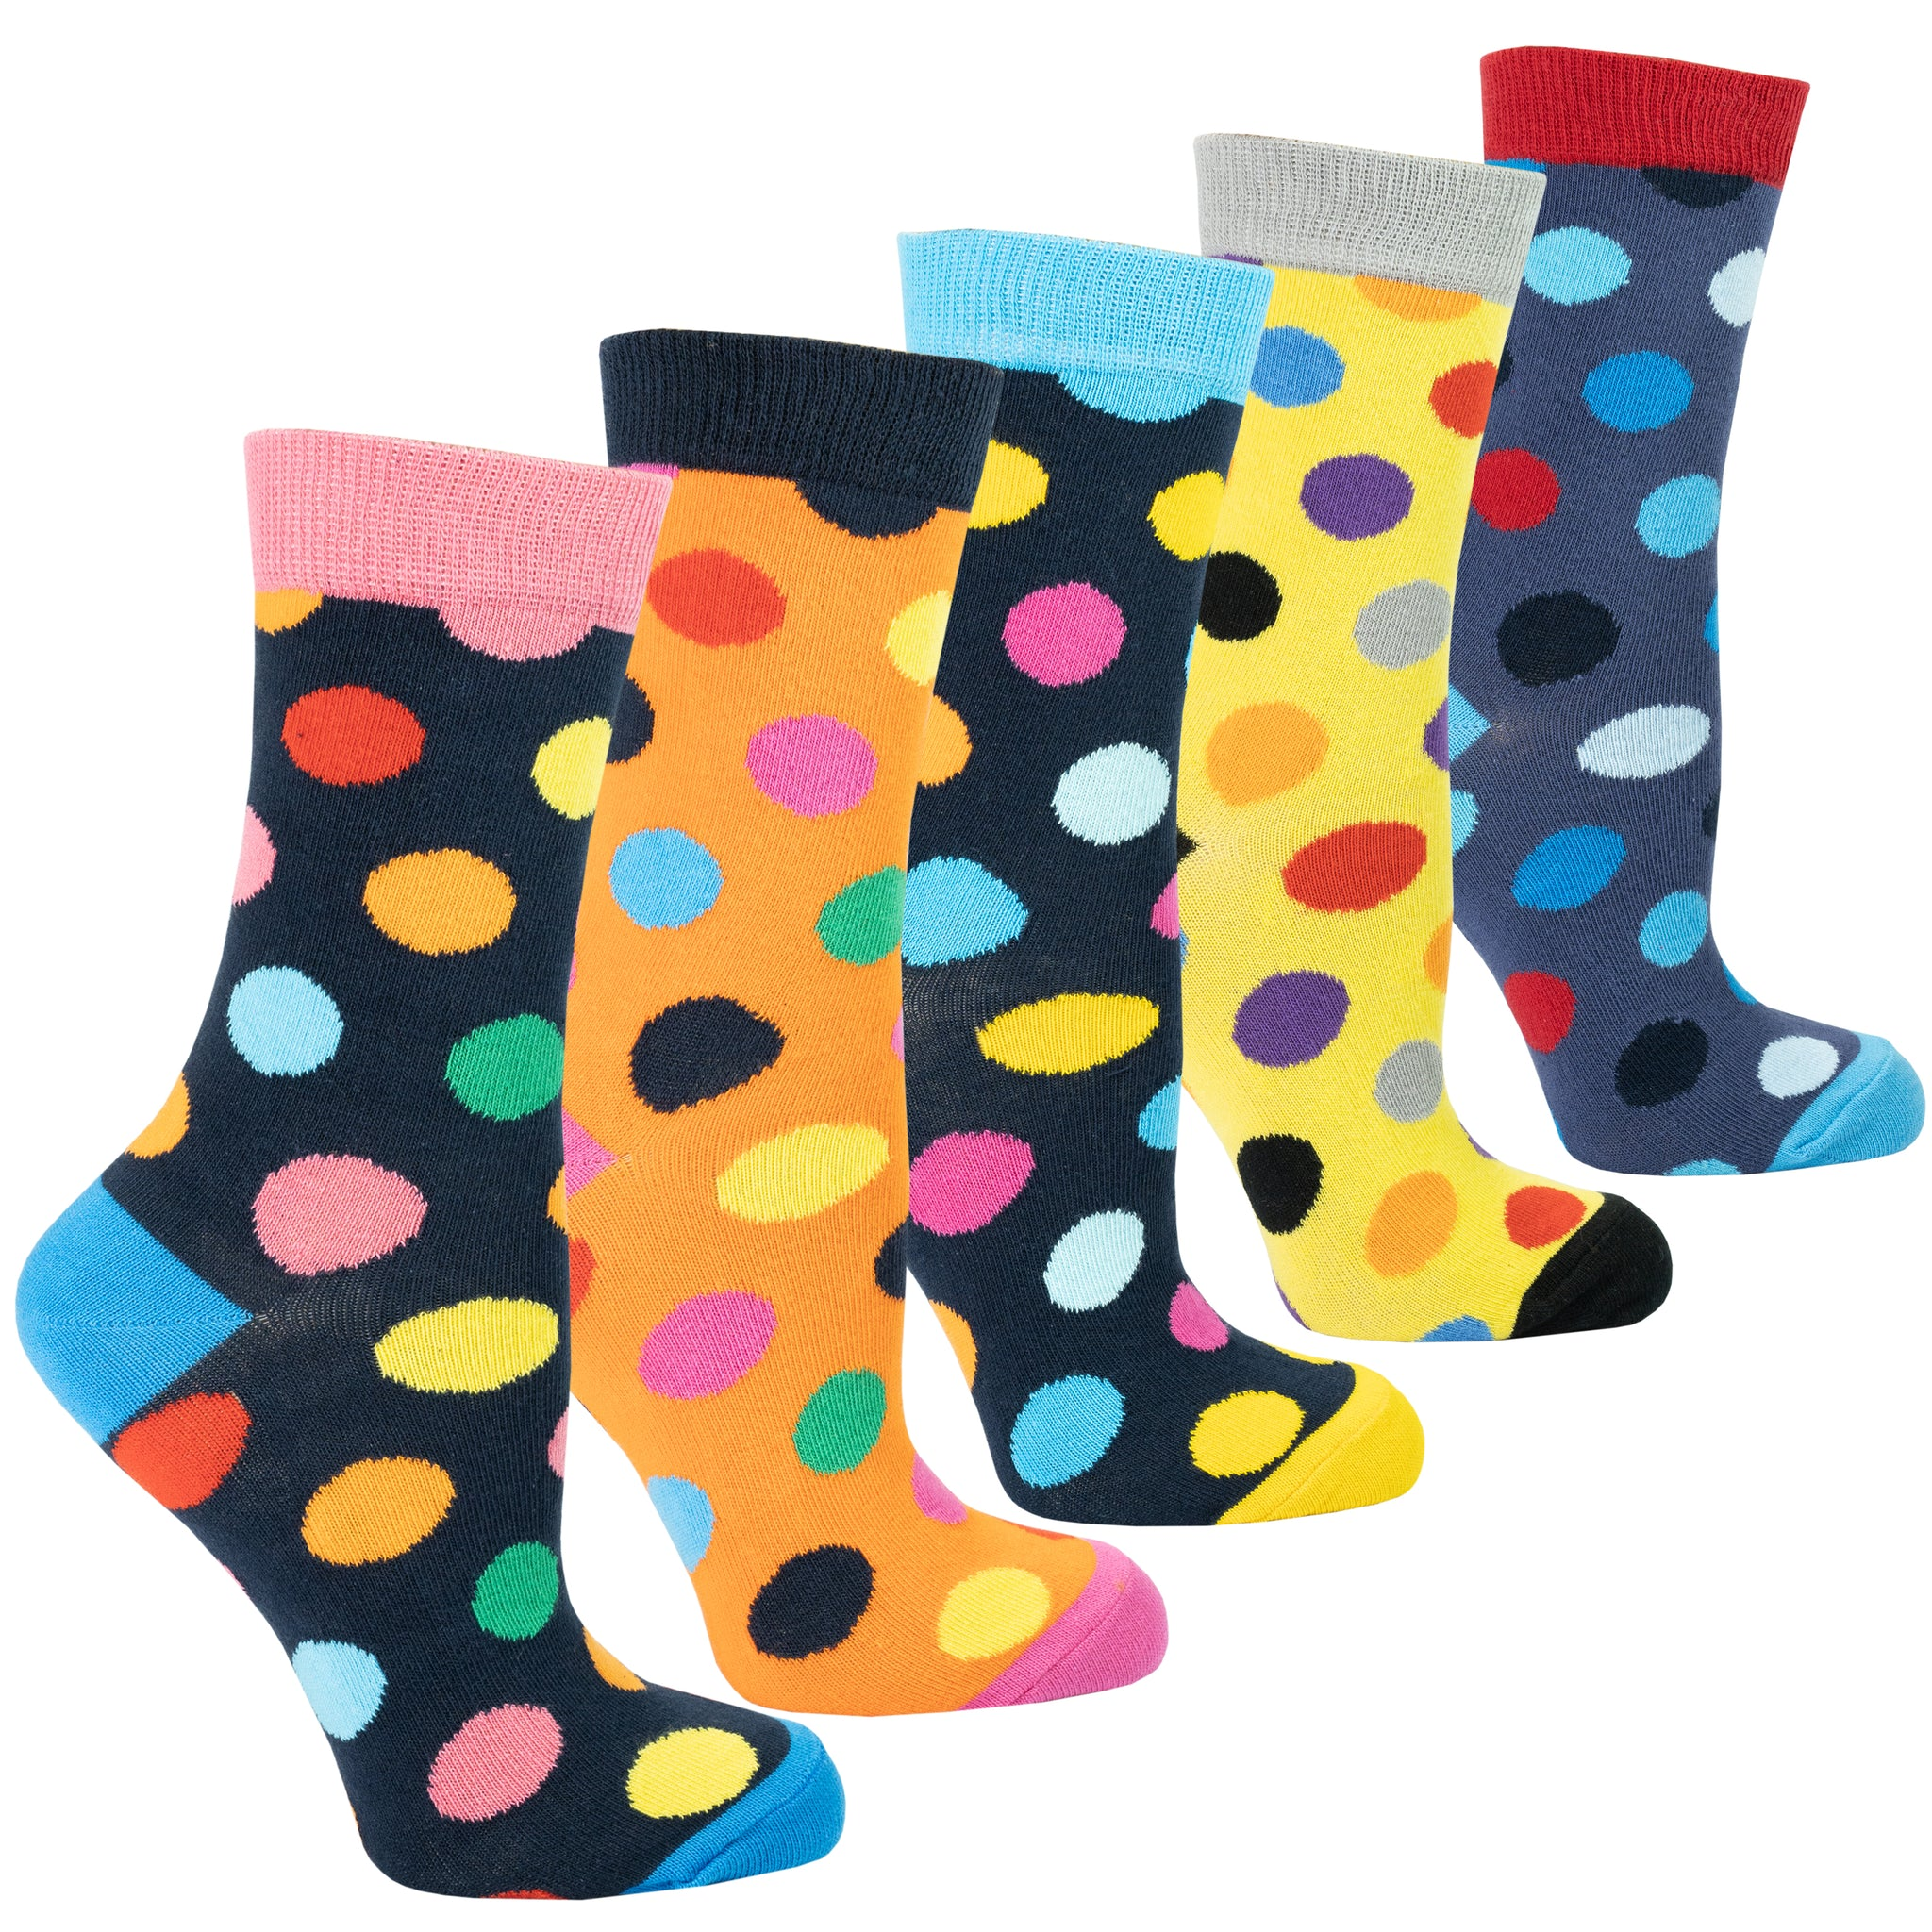 Women's Modern Dots Socks Set